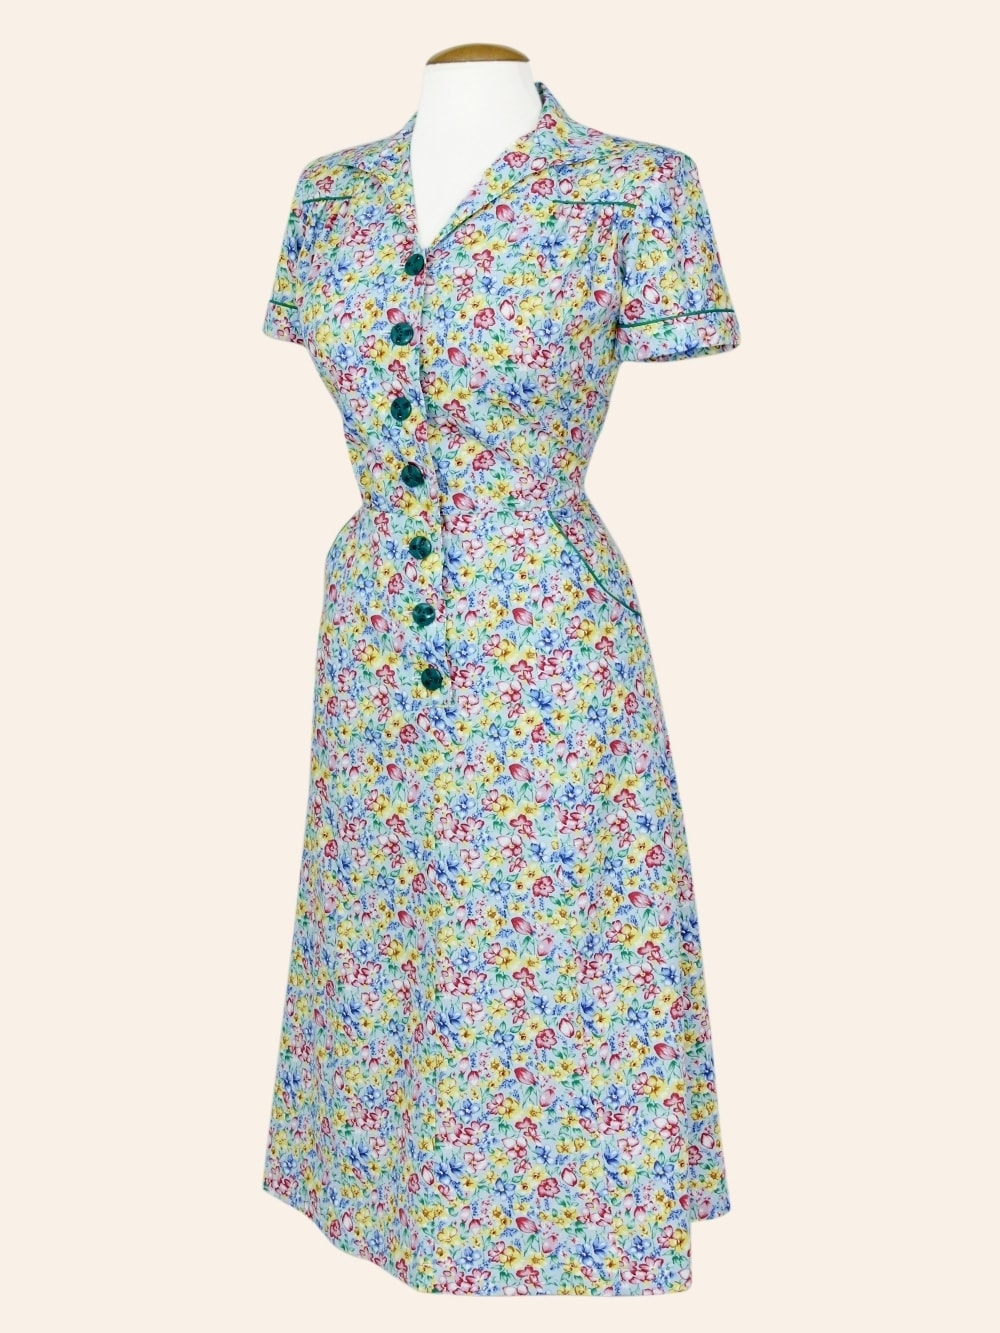 91288a099248 1940s Style Tea Dress Floral Blue from Vivien of Holloway